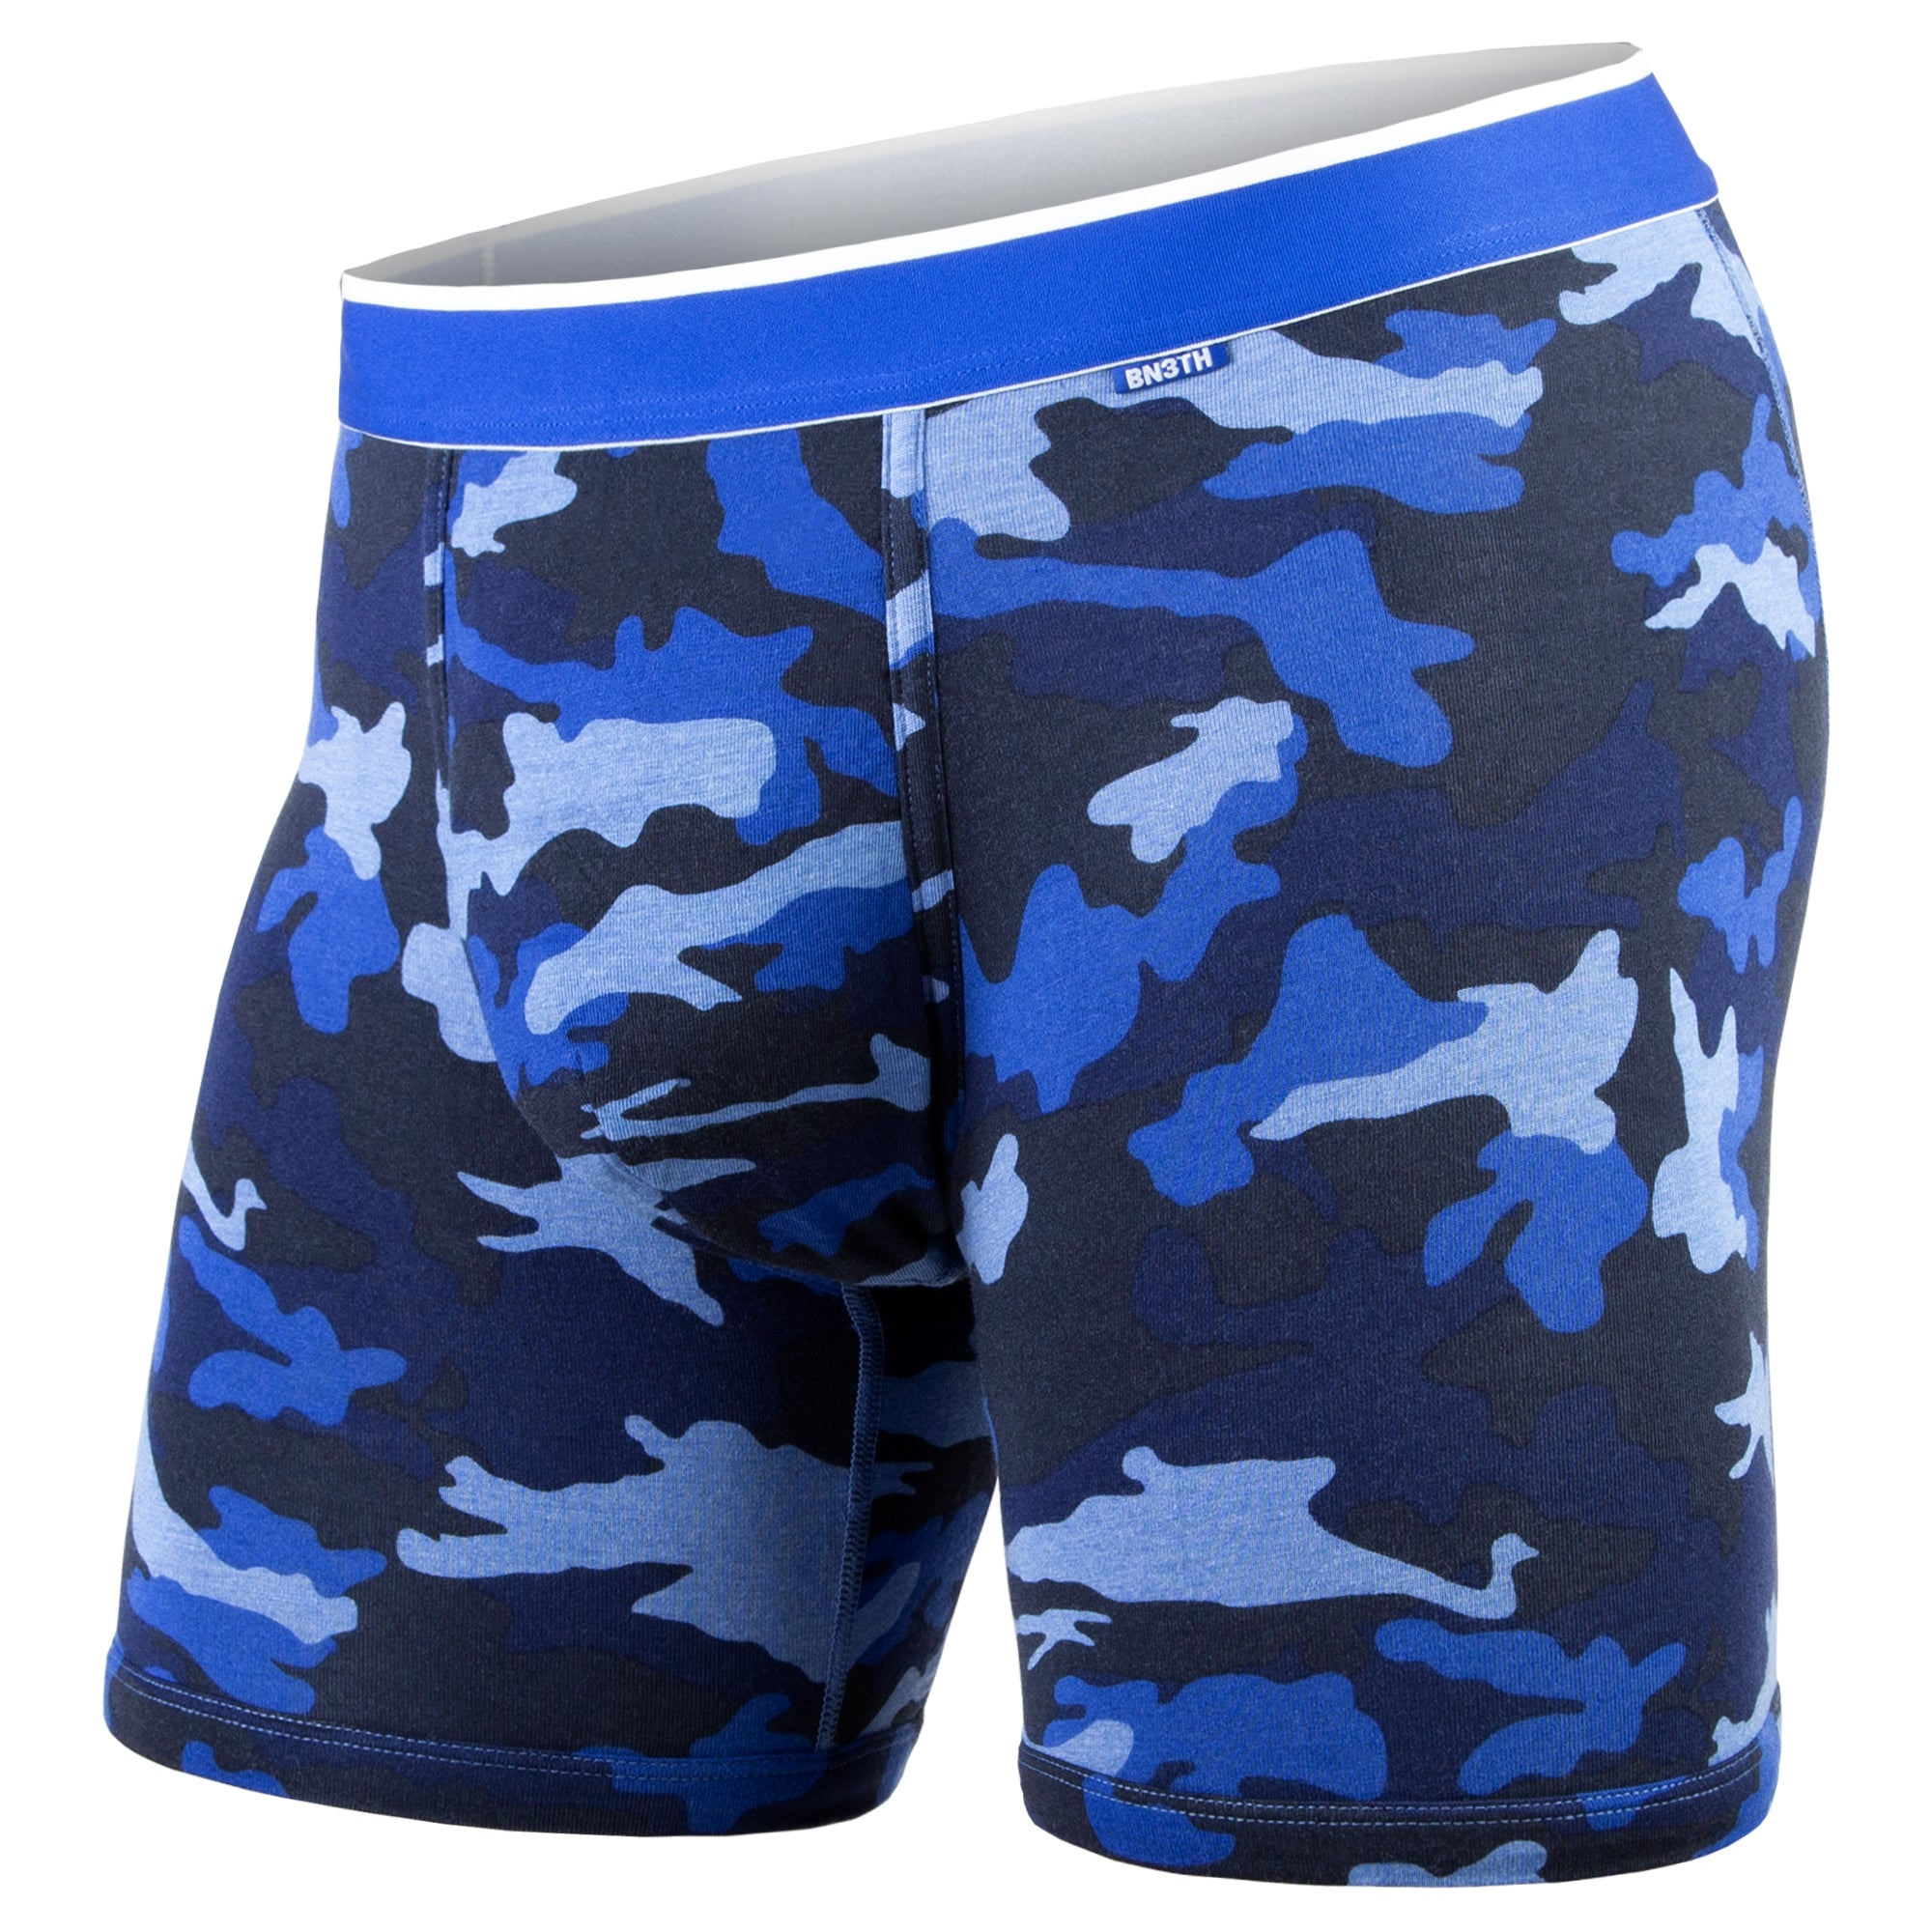 Boxer Bn3th classic heather camo blue